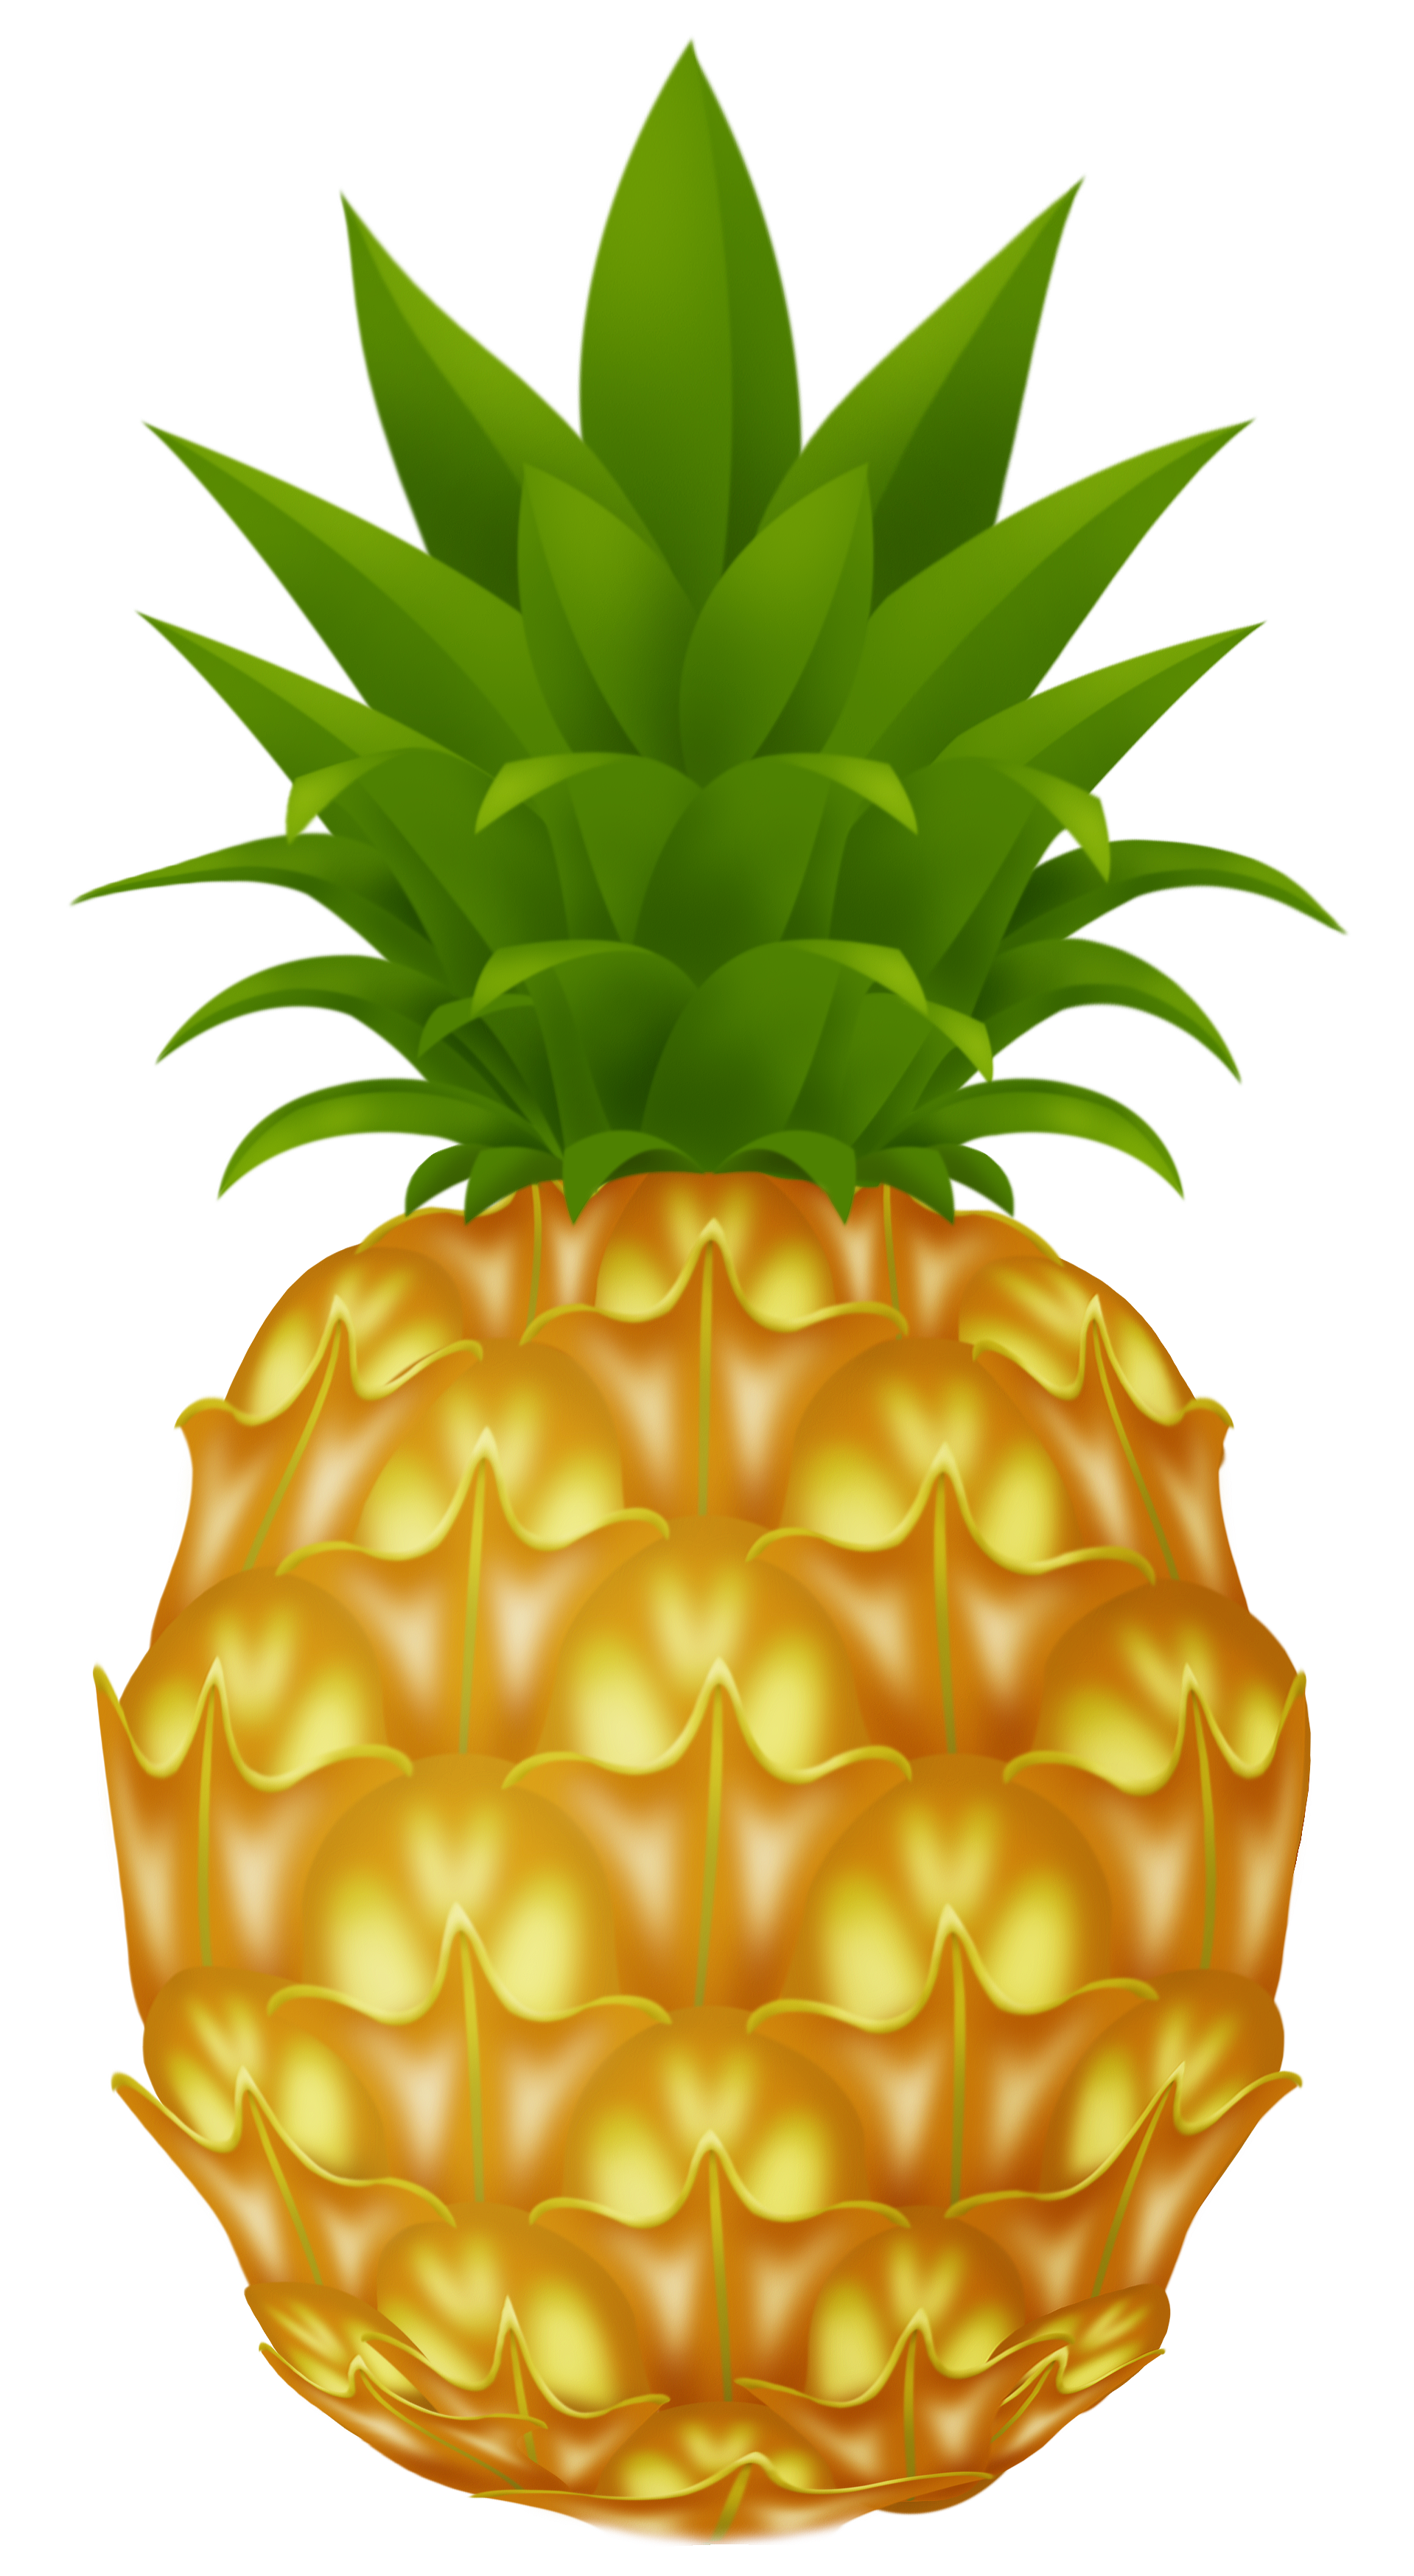 Pineapple png picture clip. Pear clipart cartoon